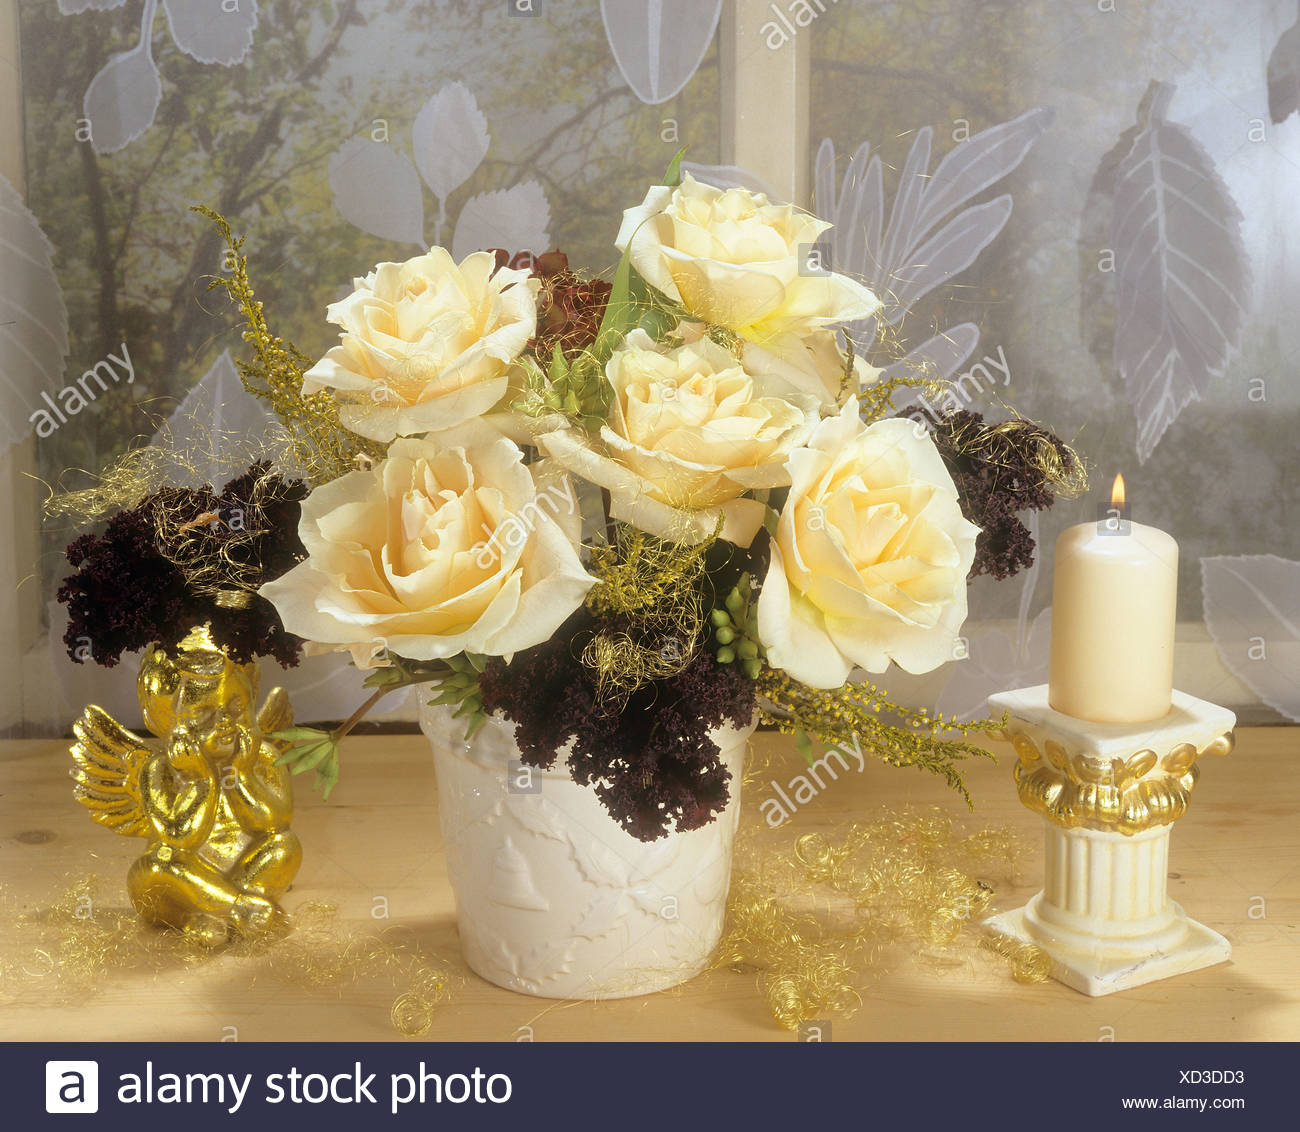 Christmas Arrangement With Yellow Roses Stock Photo 283432831 Alamy